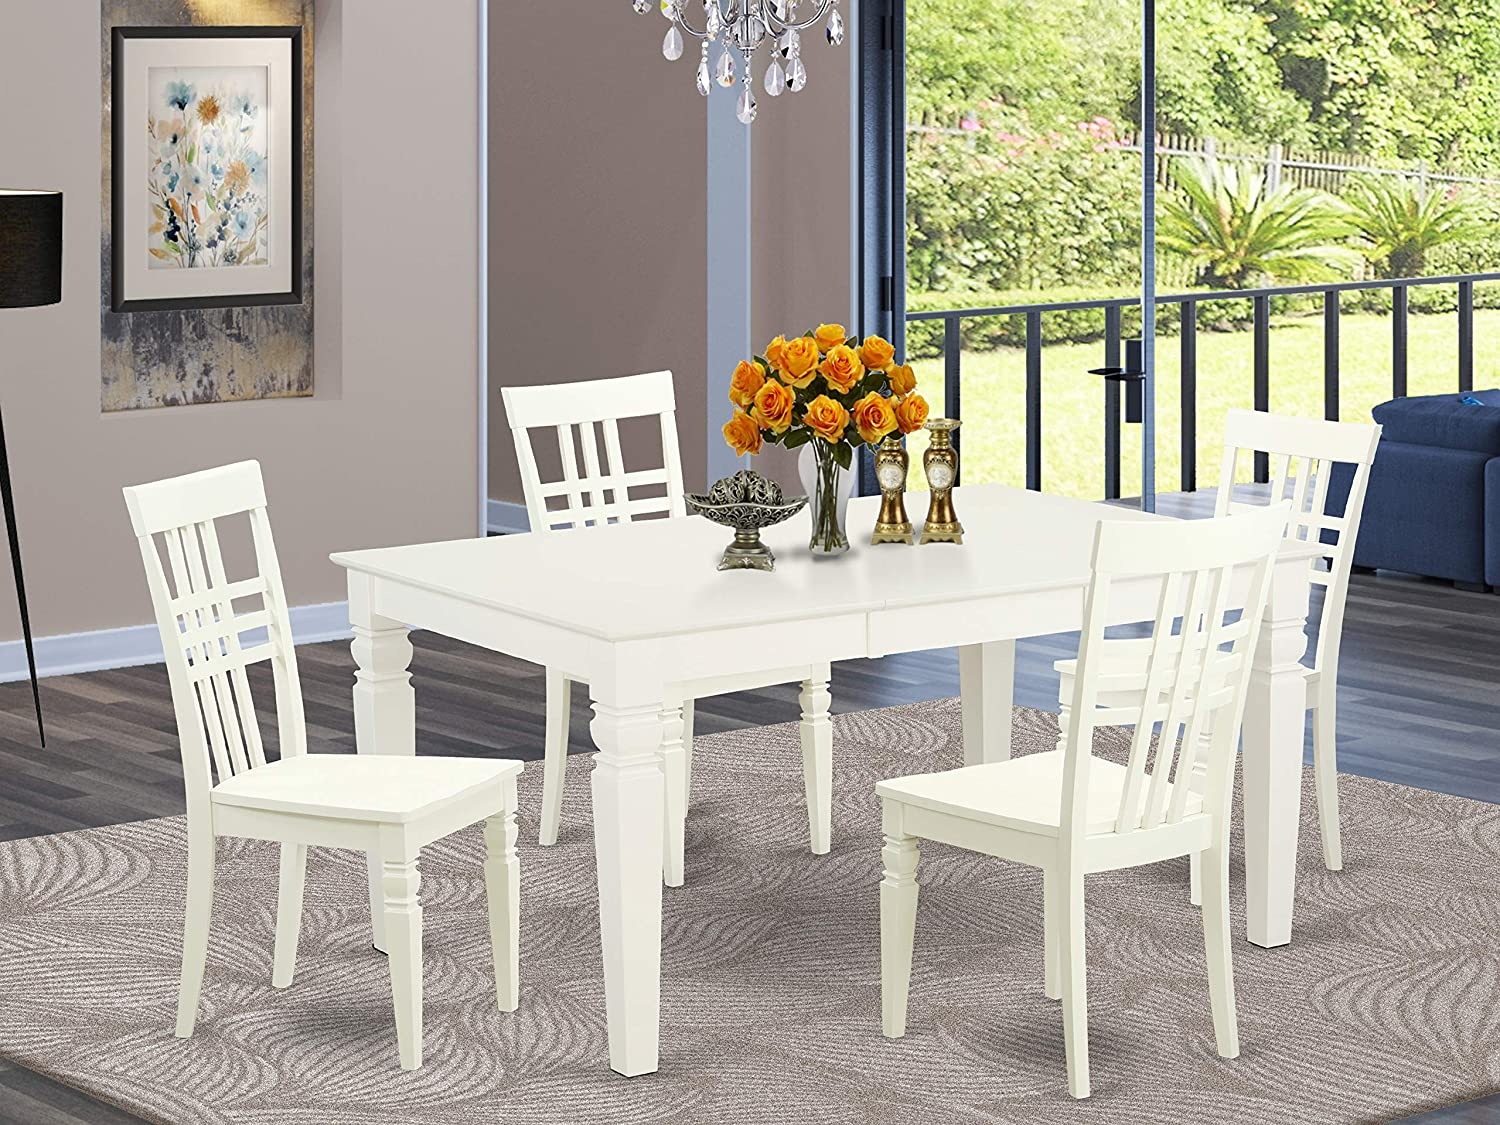 5 Pcrectangular Table and 4 Wood Chairs for Dining room in Linen White